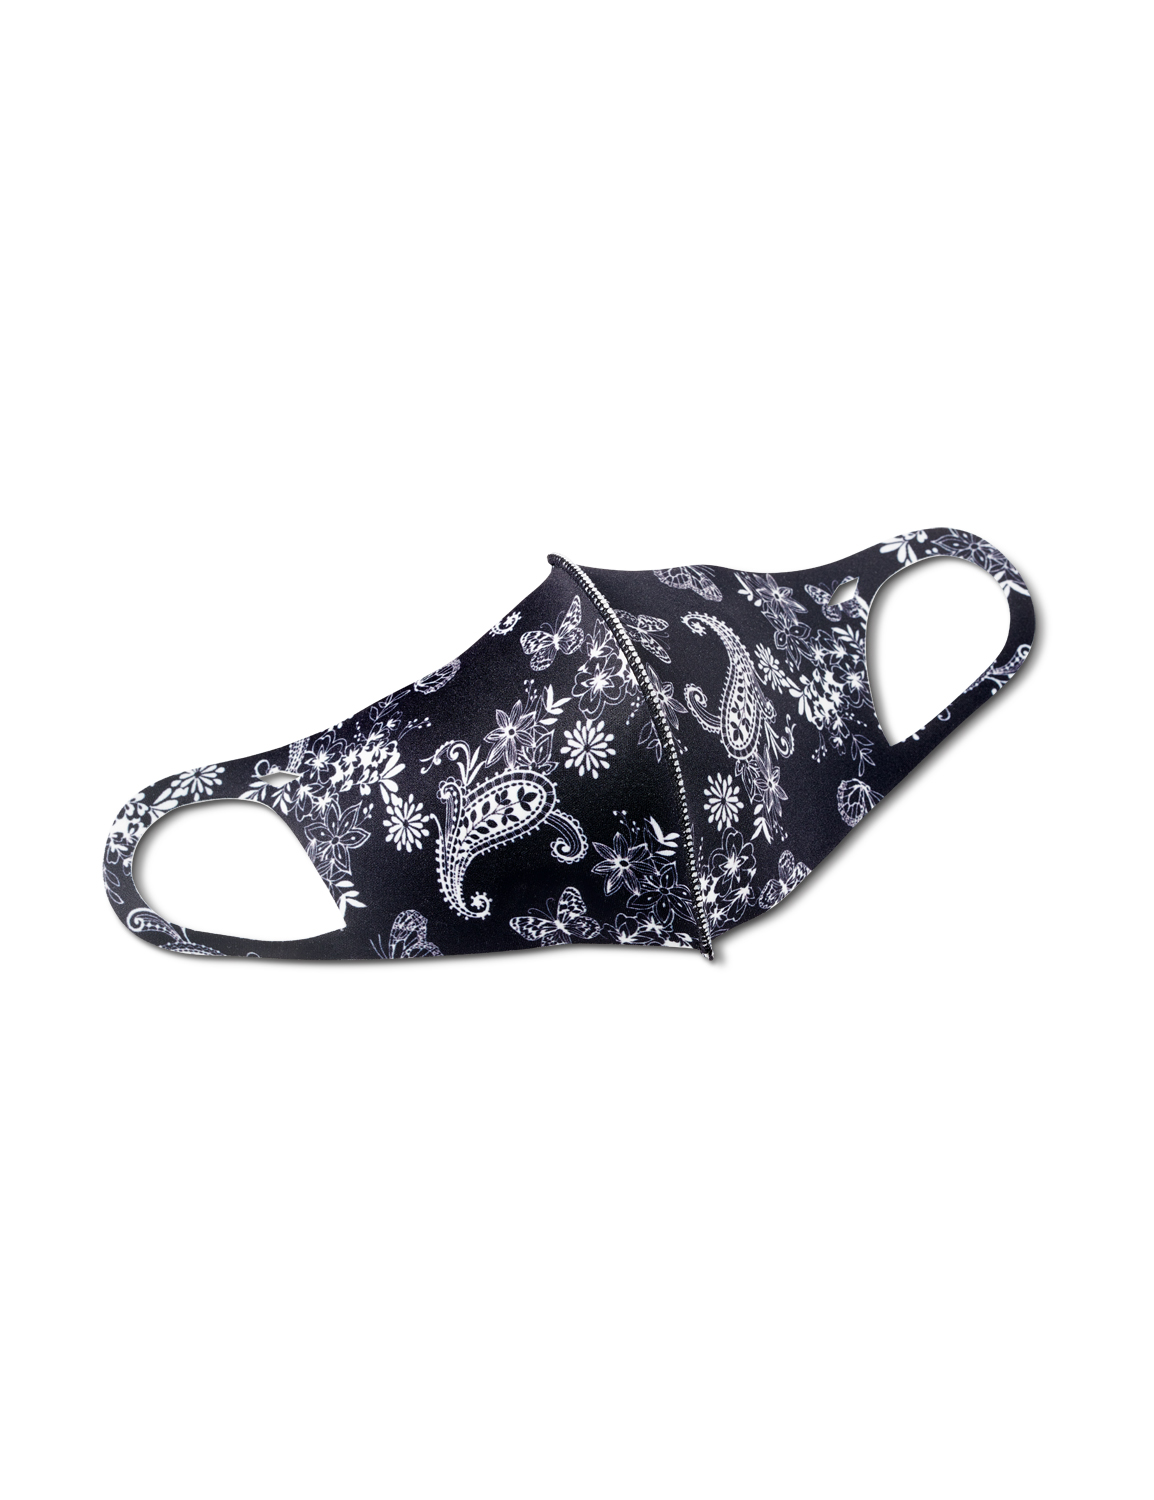 Garden Paisley Anti-Bacterial Fashion Face Mask - Black/White - Front